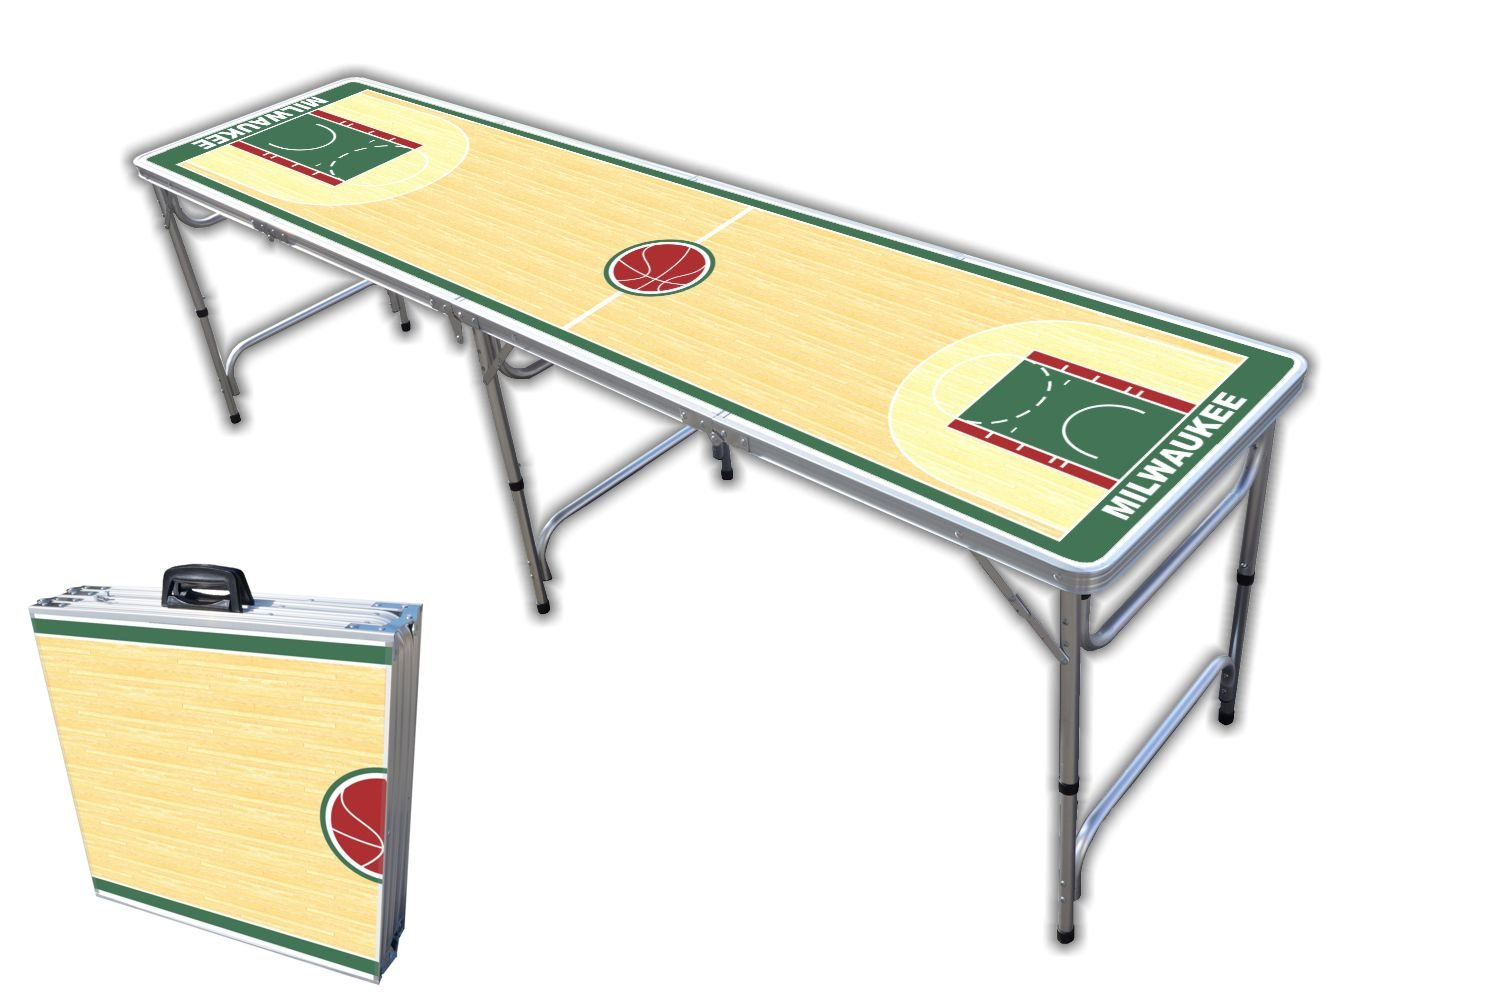 8-Foot Professional Beer Pong Table - Milwaukee Basketball Court Graphic by PartyPongTables.com